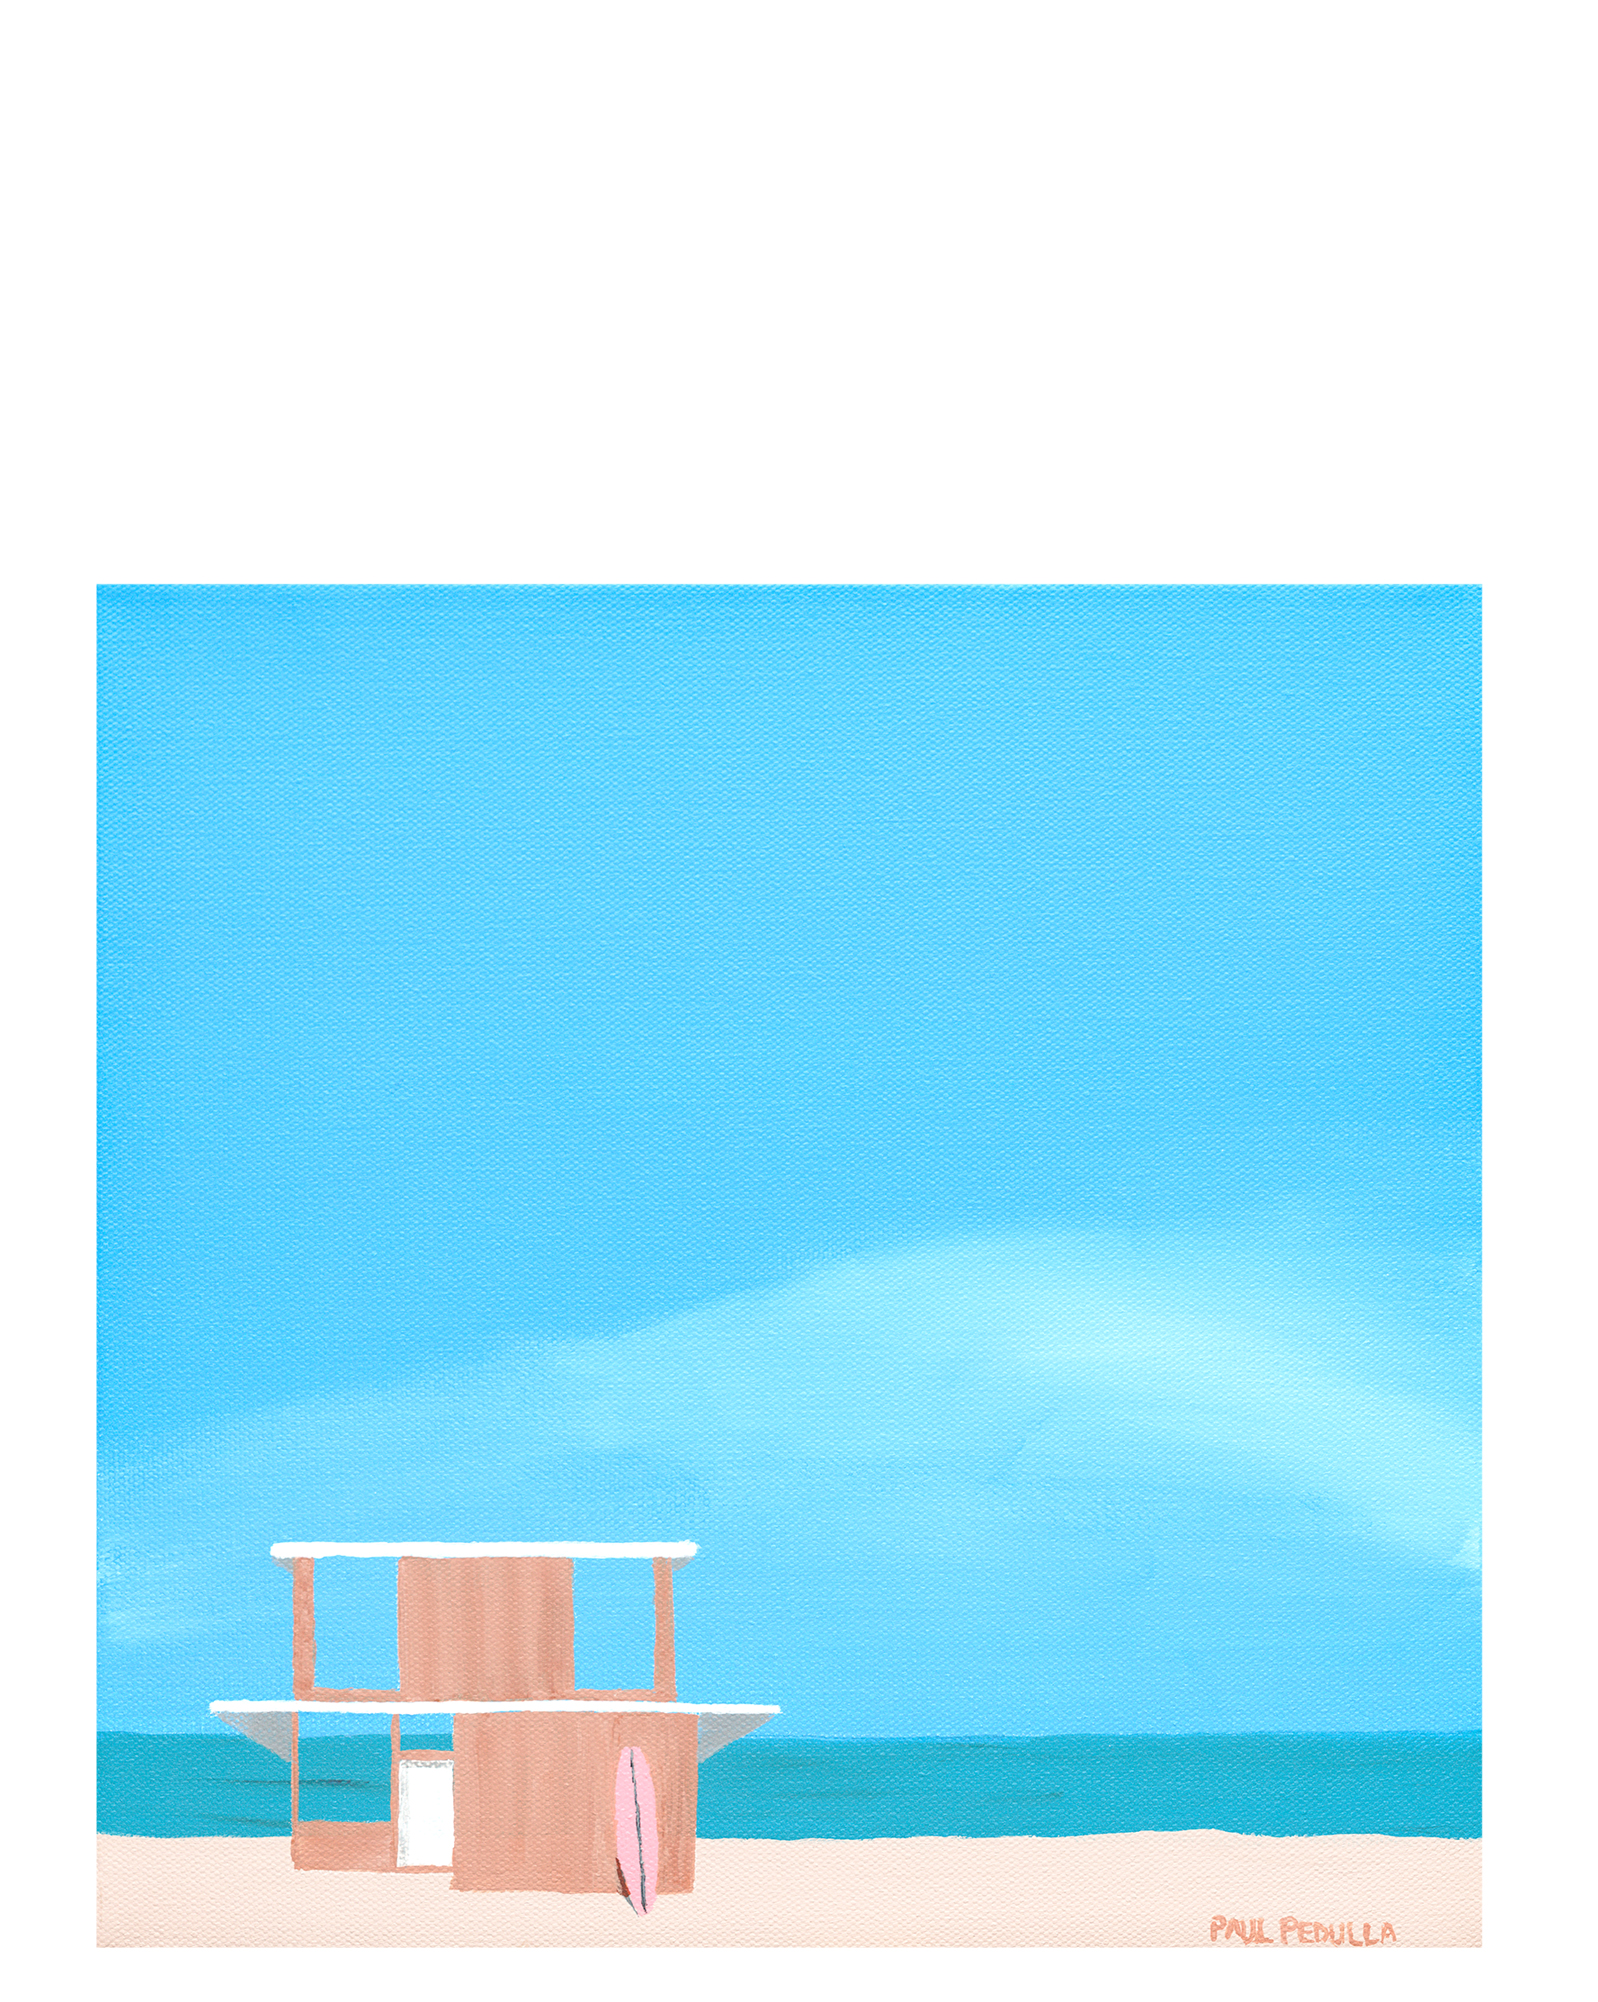 """Surfside"" by Paul Pedulla,"